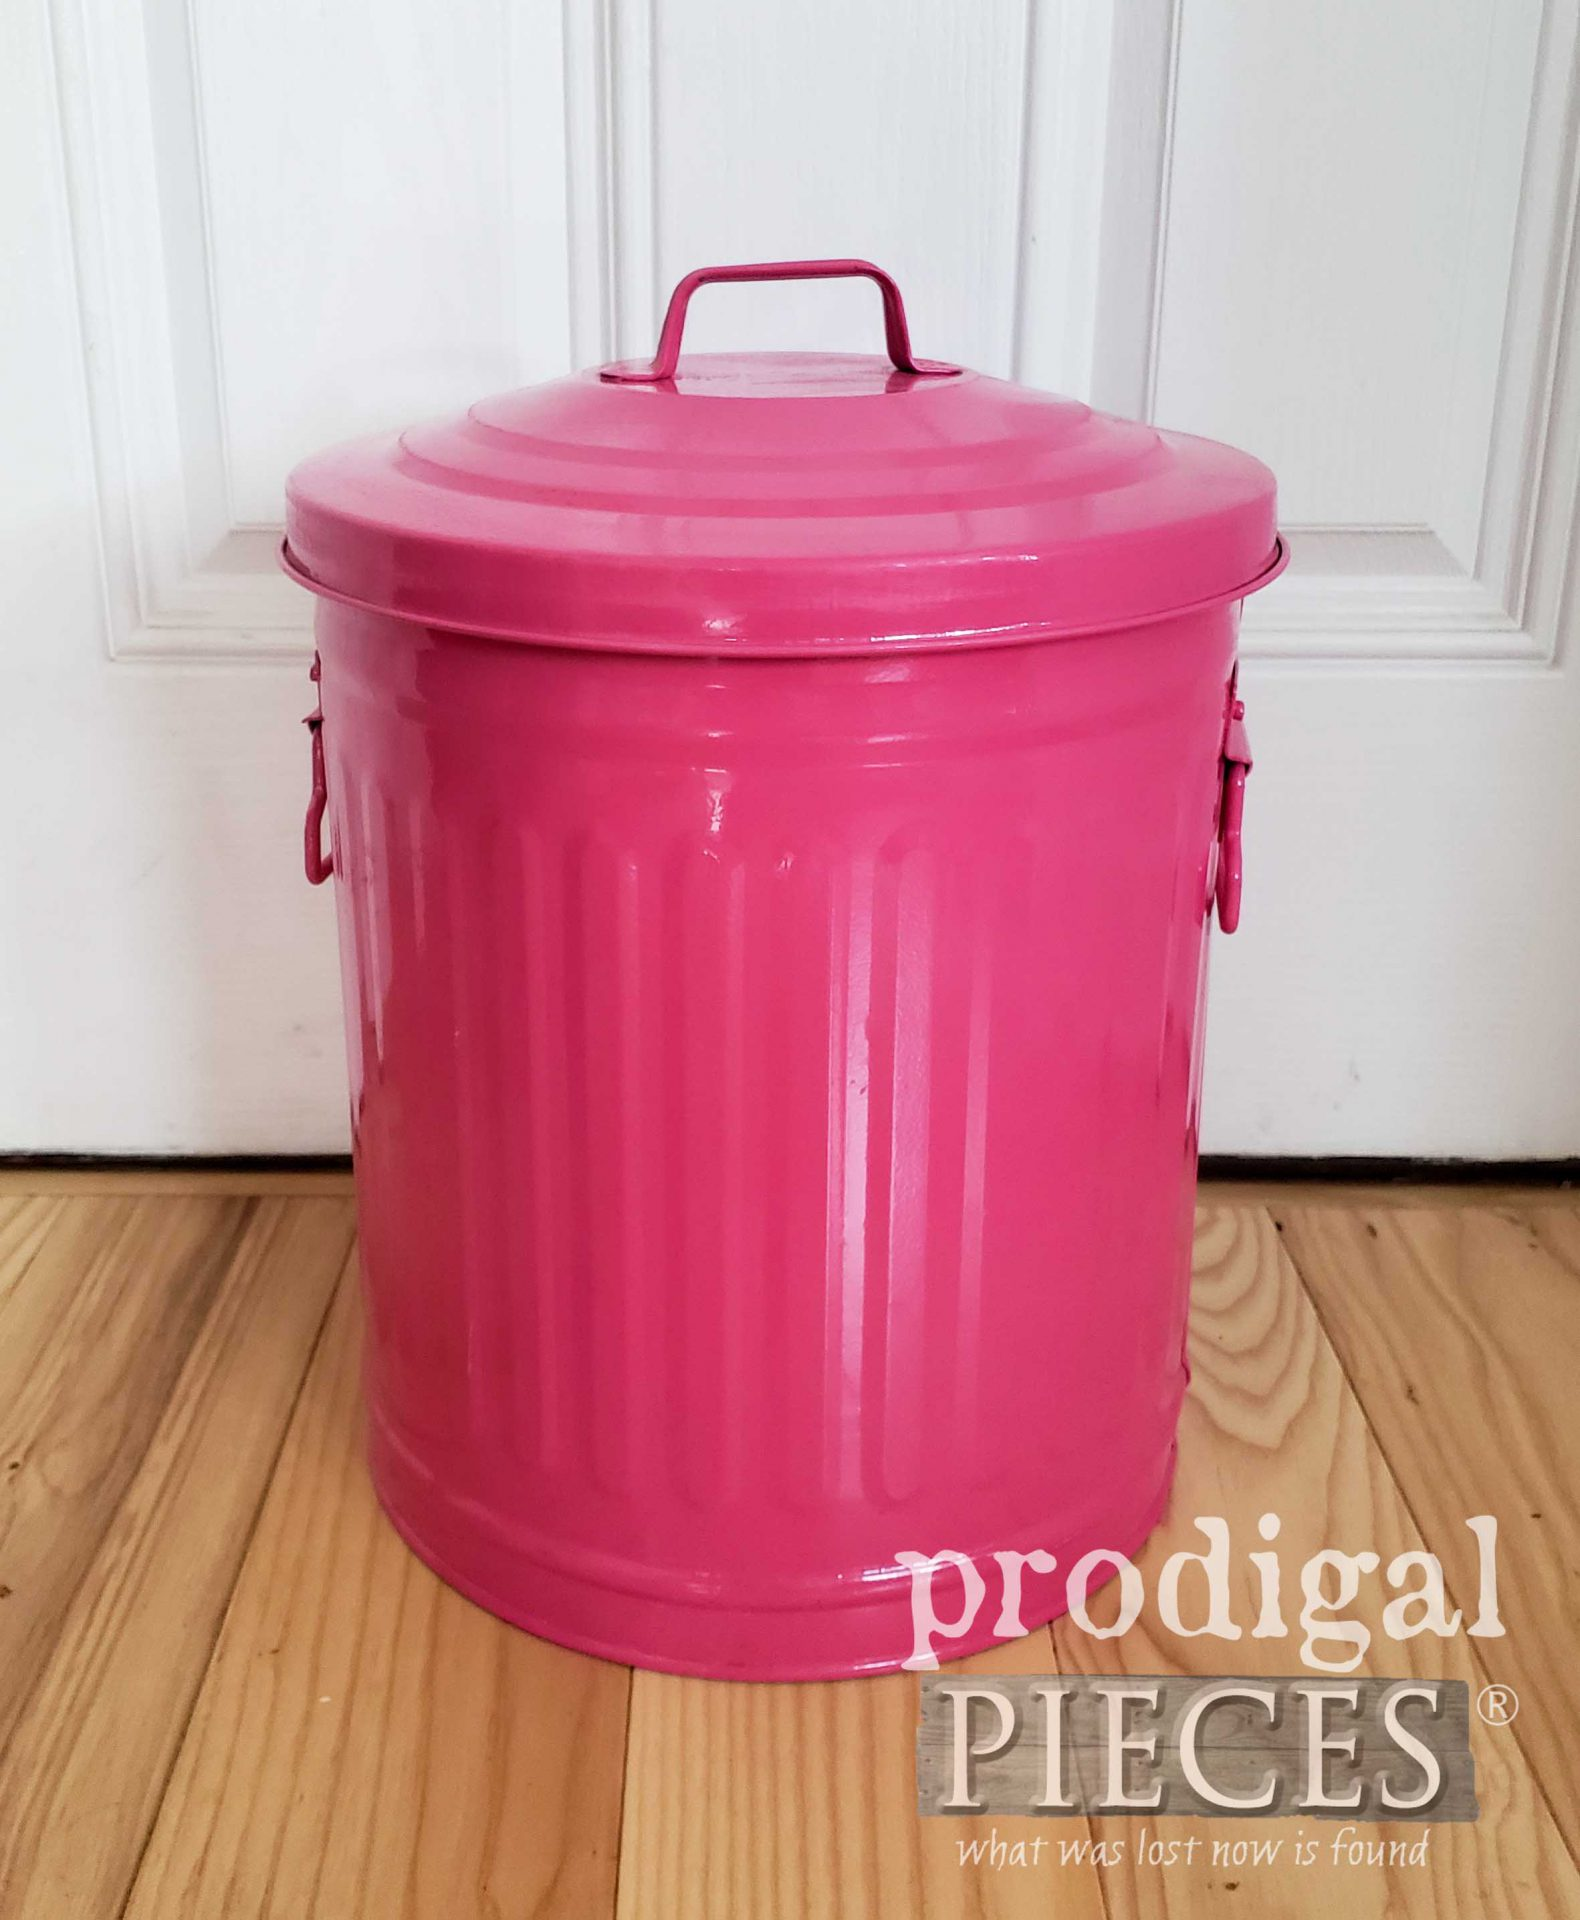 Hot Pink Trash Can Ready for a Farmhouse Makeover by Larissa of Prodigal Pieces | prodigalpieces.com